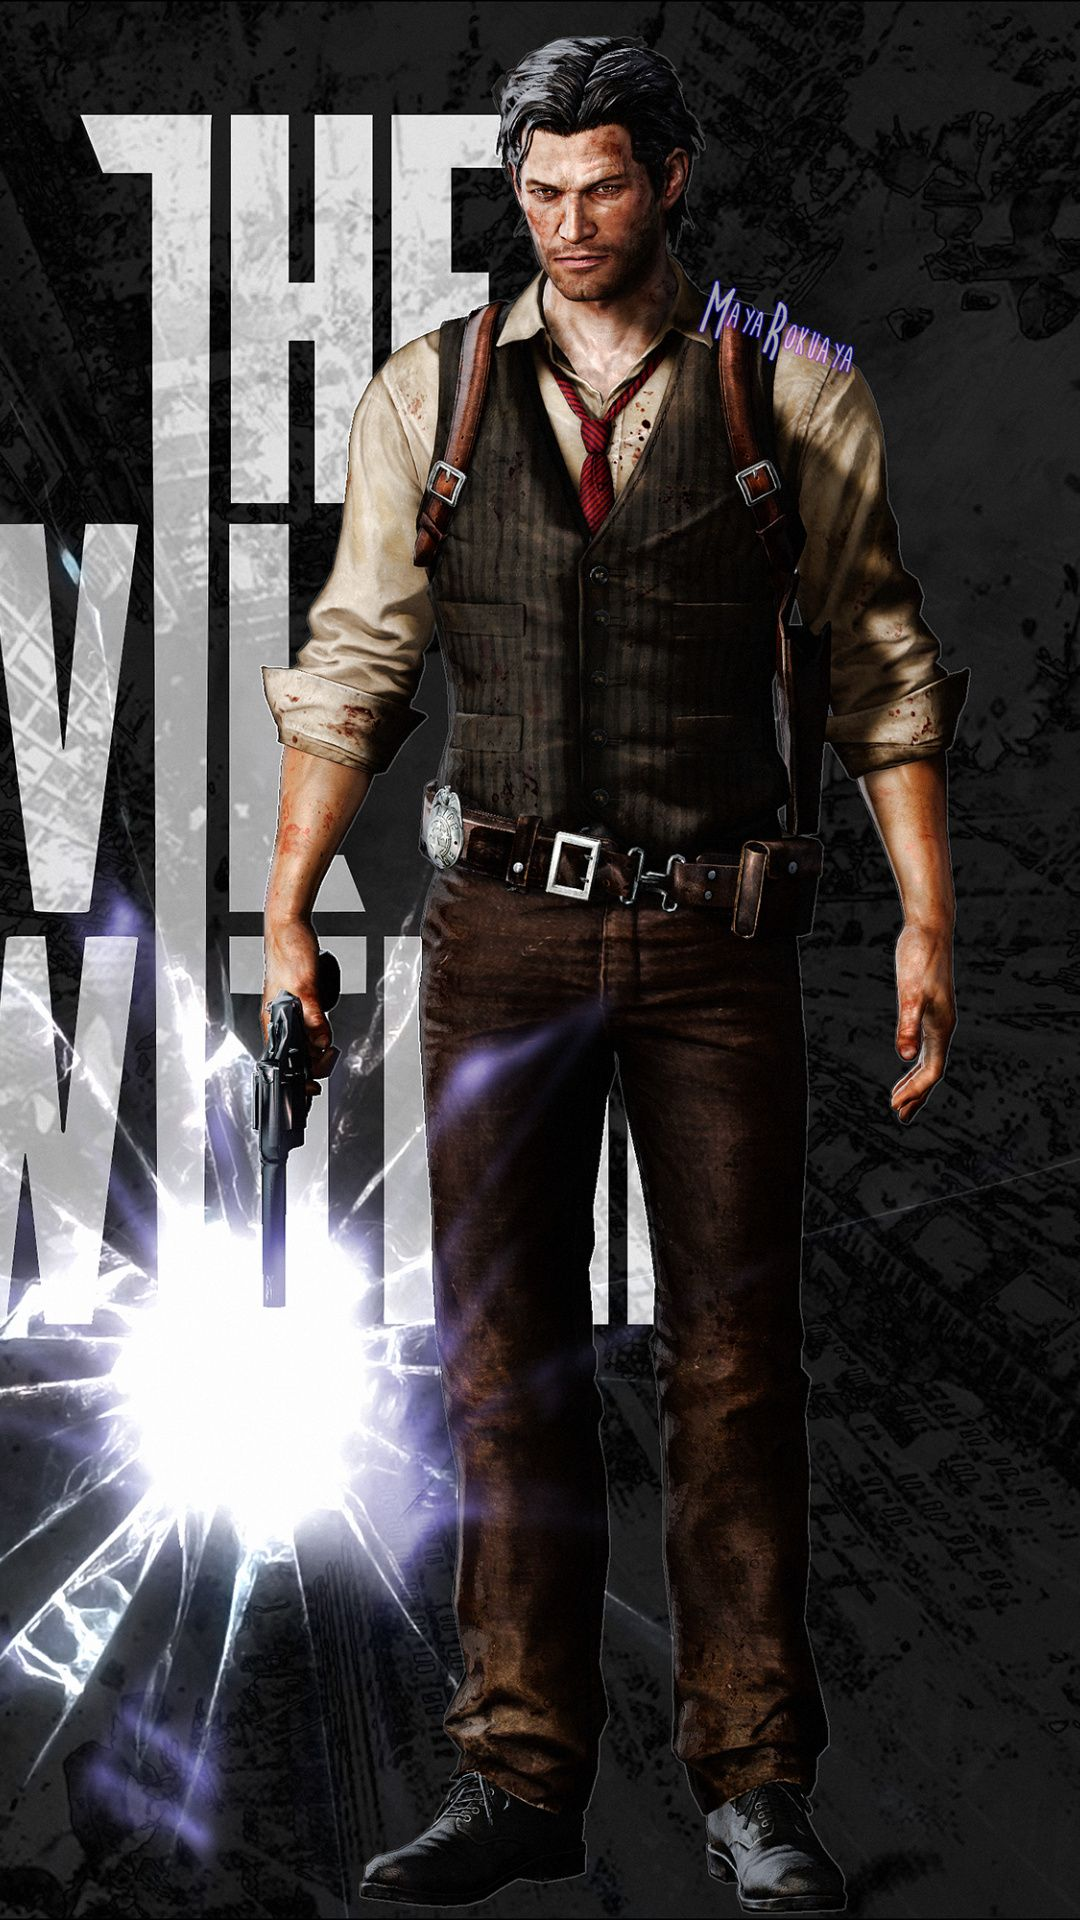 The Evil within, video game, art Wallpaper The evil